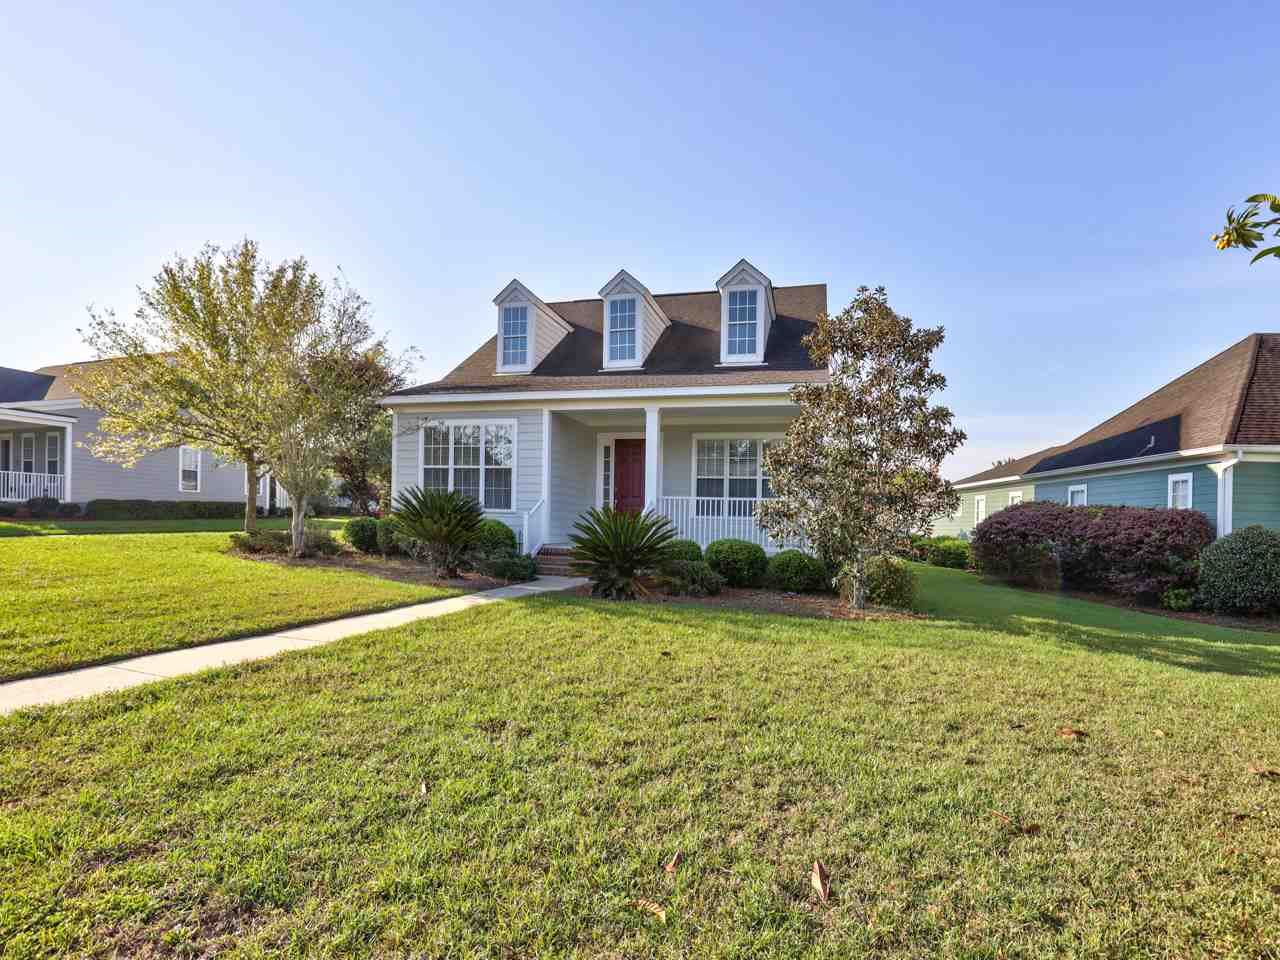 Photo of 3005 Dickinson Drive, TALLAHASSEE, FL 32311 (MLS # 317655)